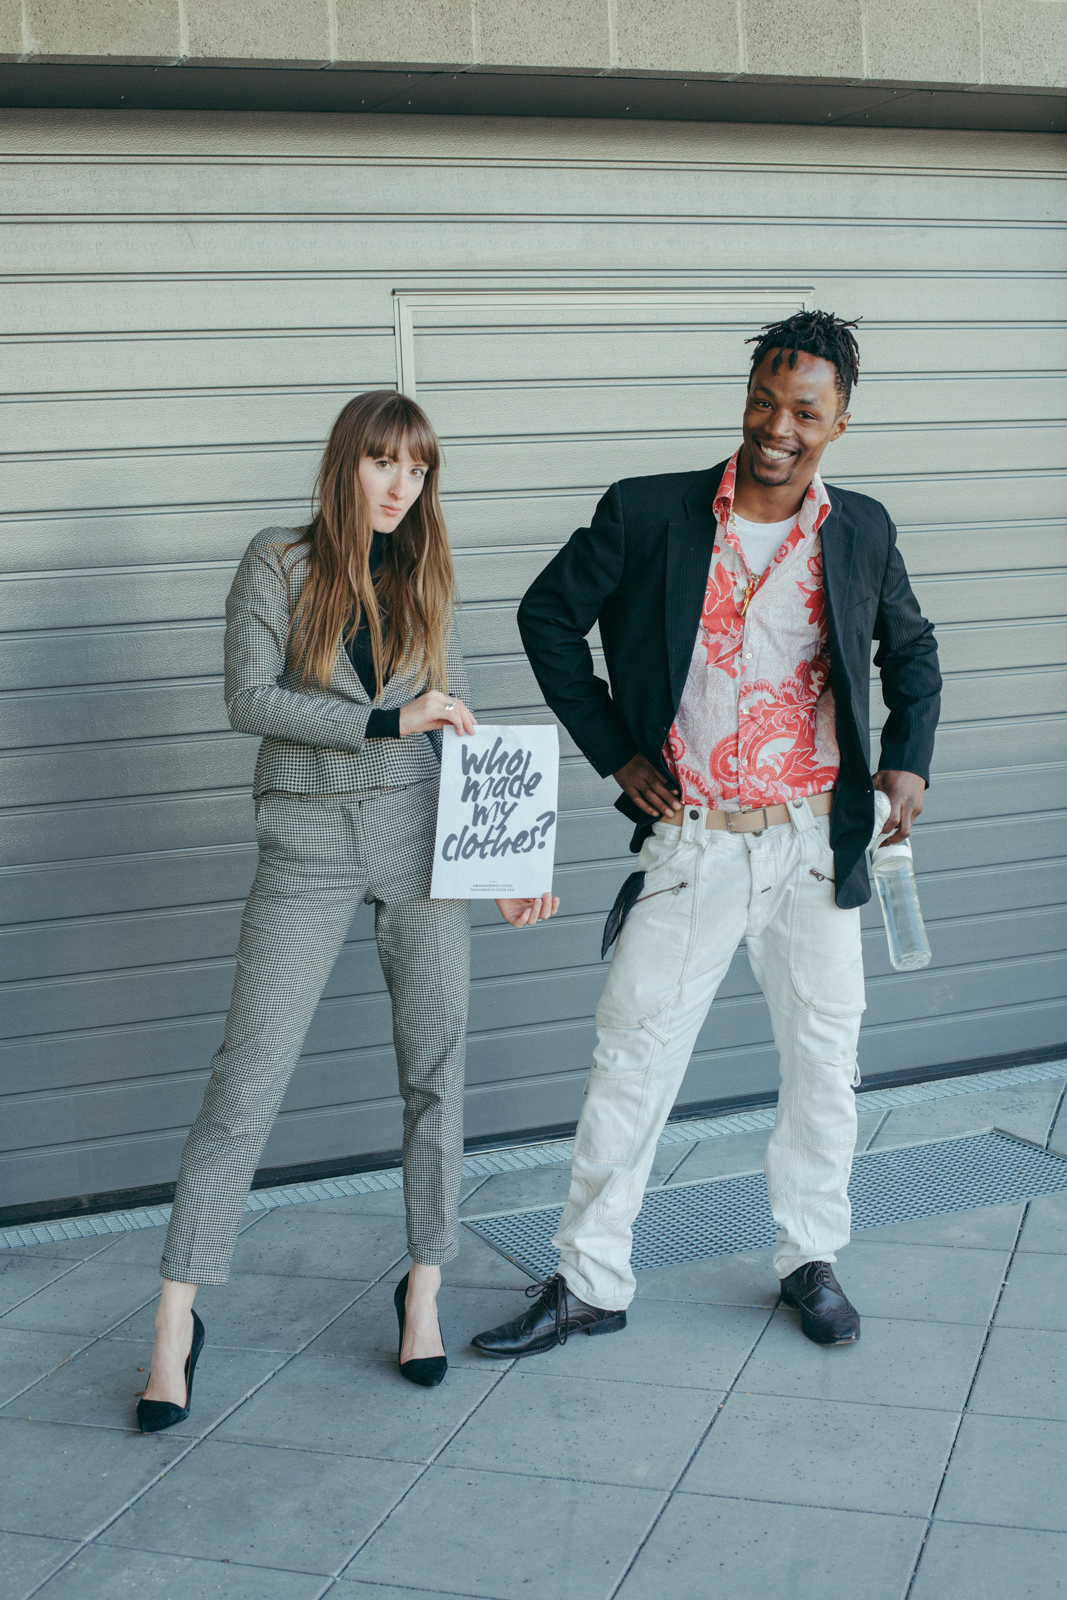 Cherie with passerby Jamny during Fashion Revolution Week 2018. Captured by  Christianna Quack , aka Vegan Stylist.